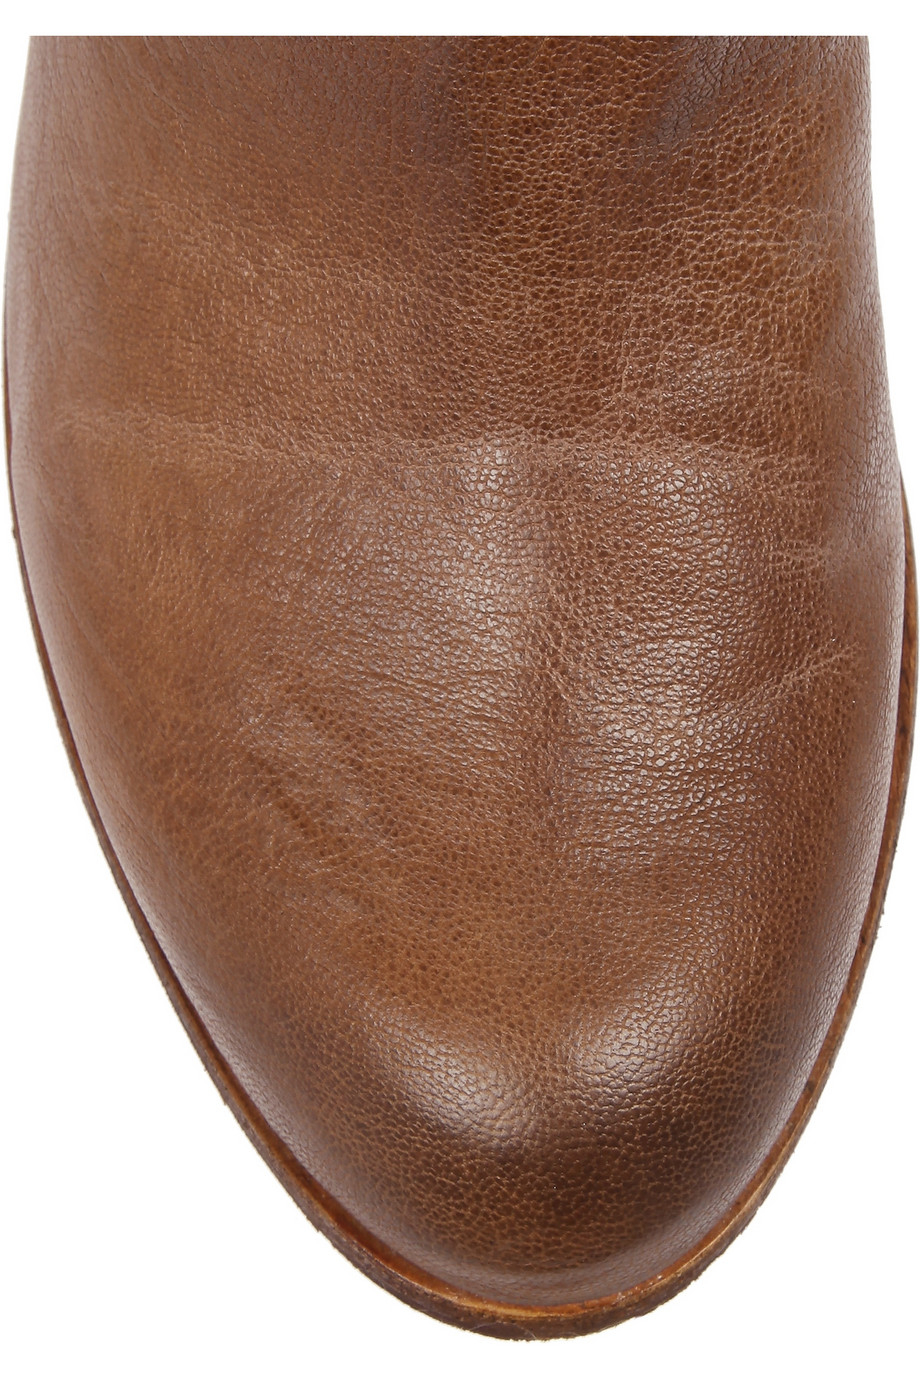 6531a00d2 Sam Edelman James Leather Boots in Brown - Lyst